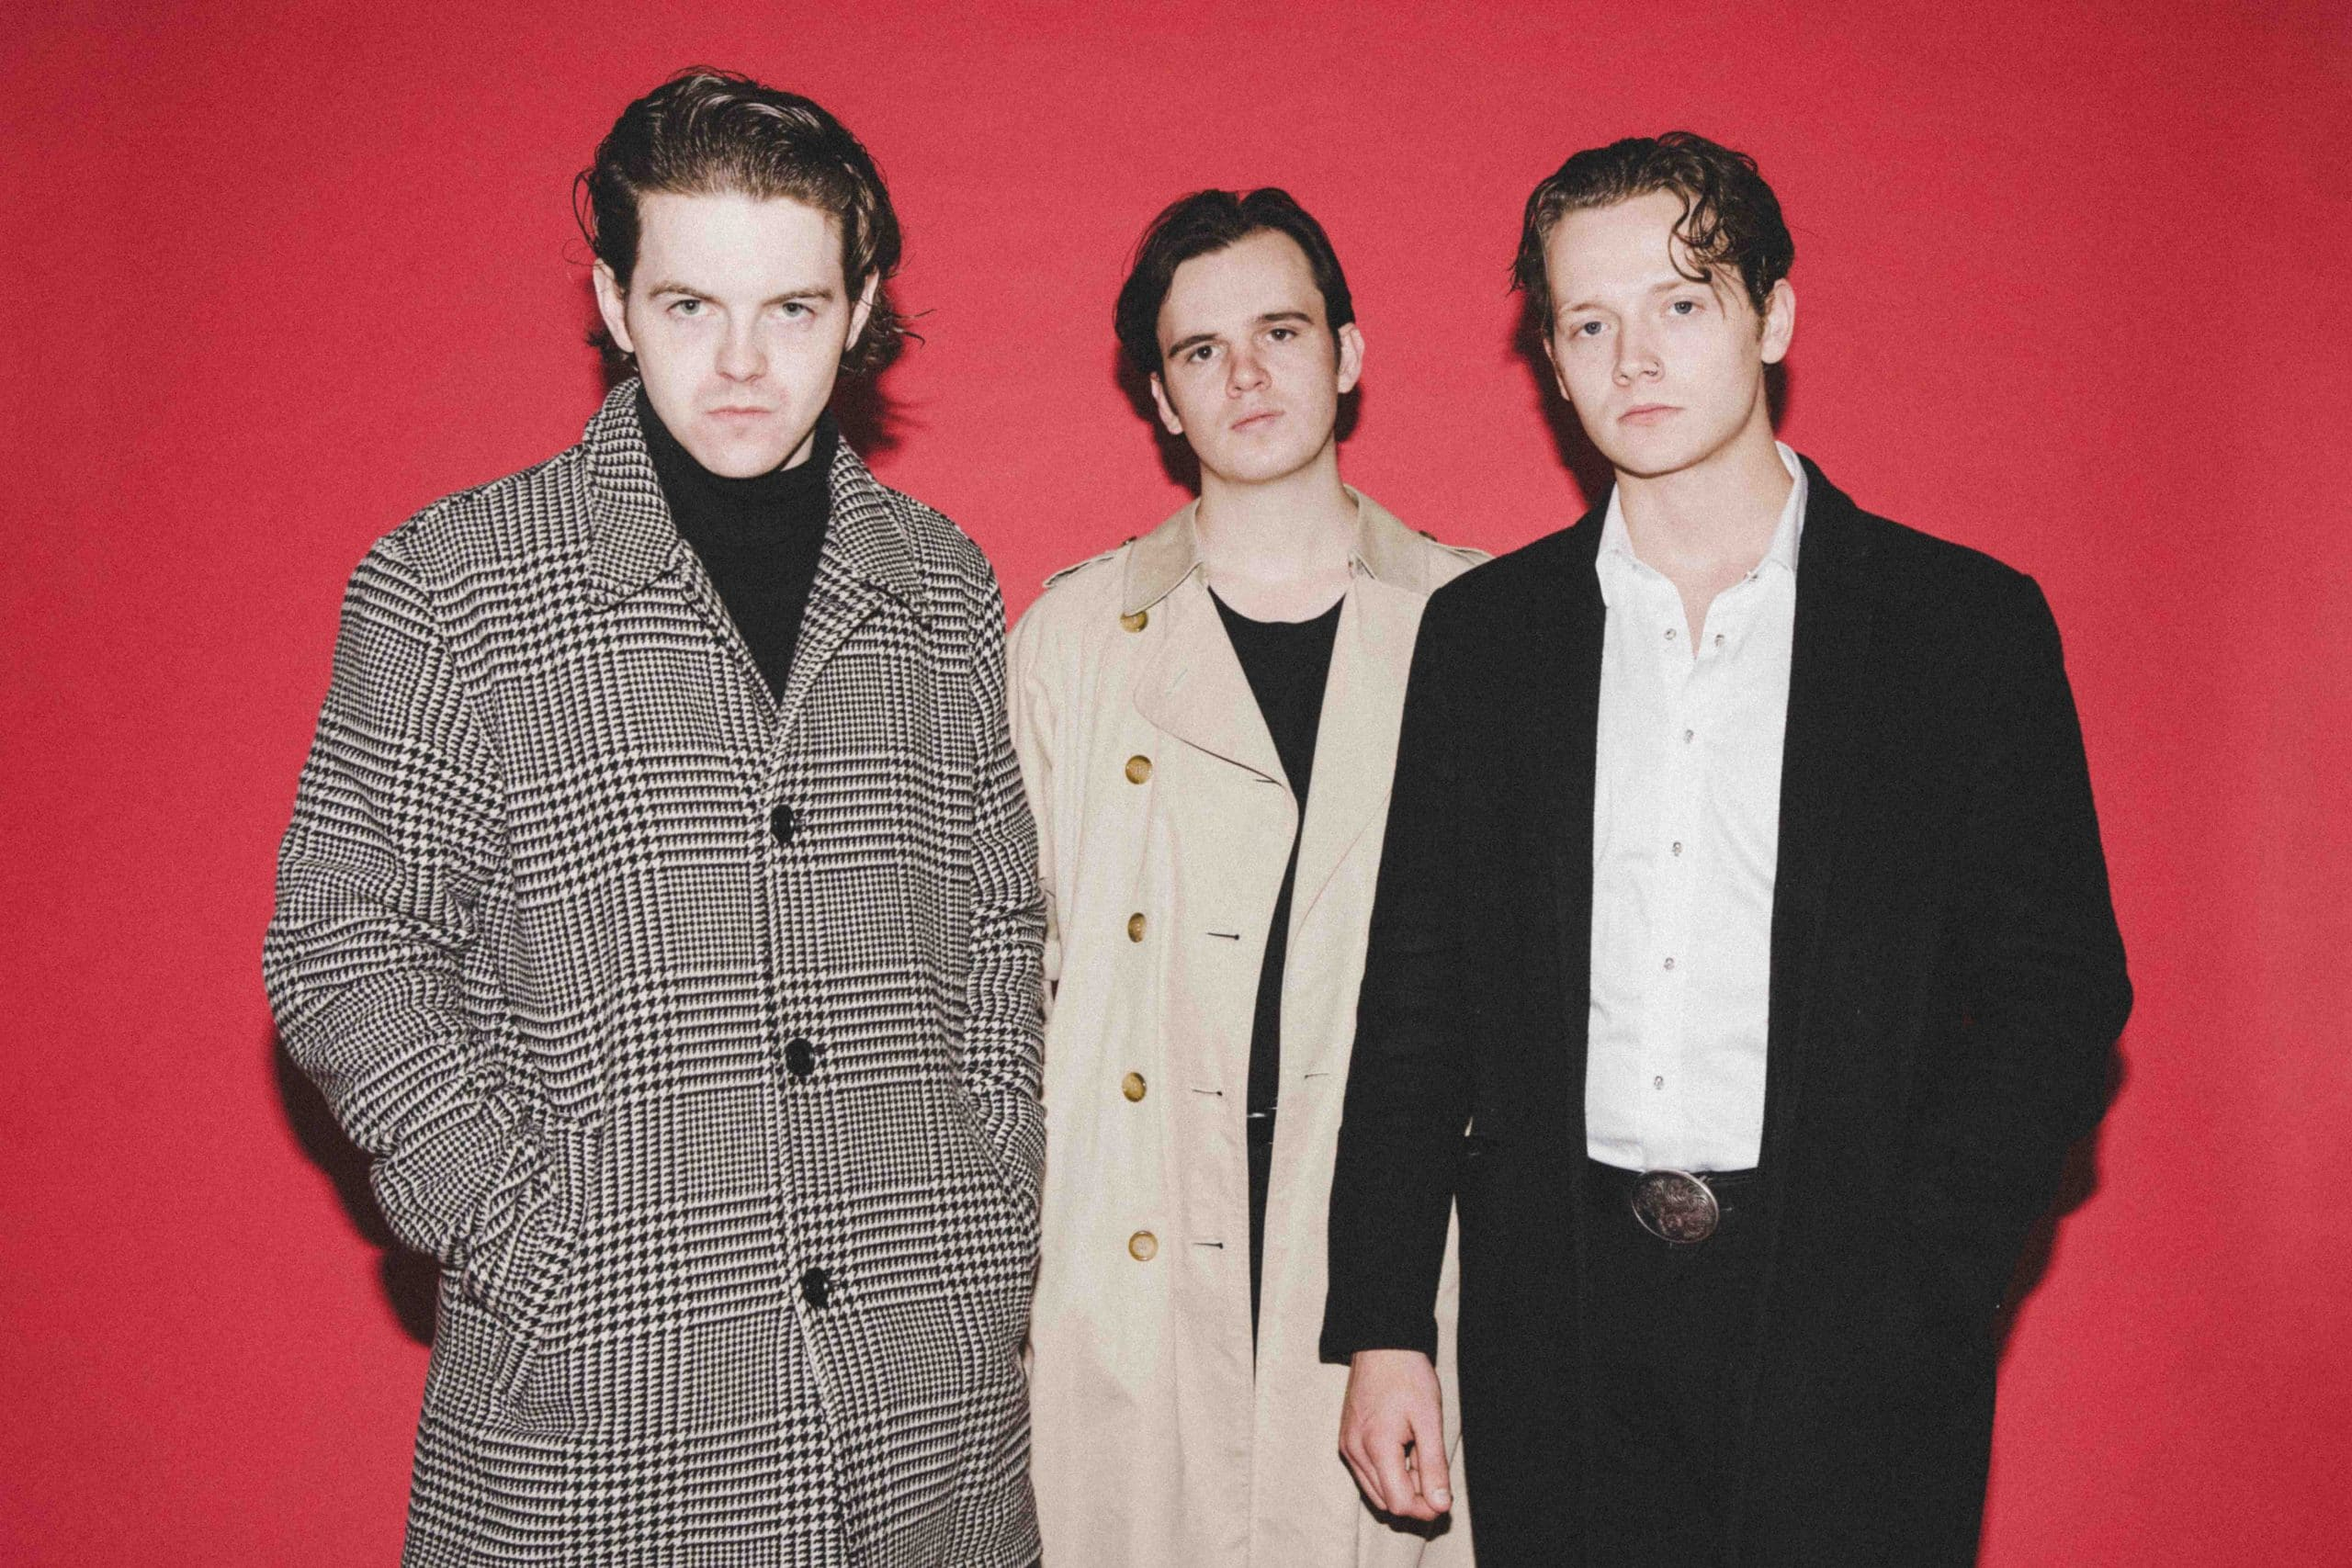 The Blinders announce new album Fantasies Of A Stay At Home Psychopath